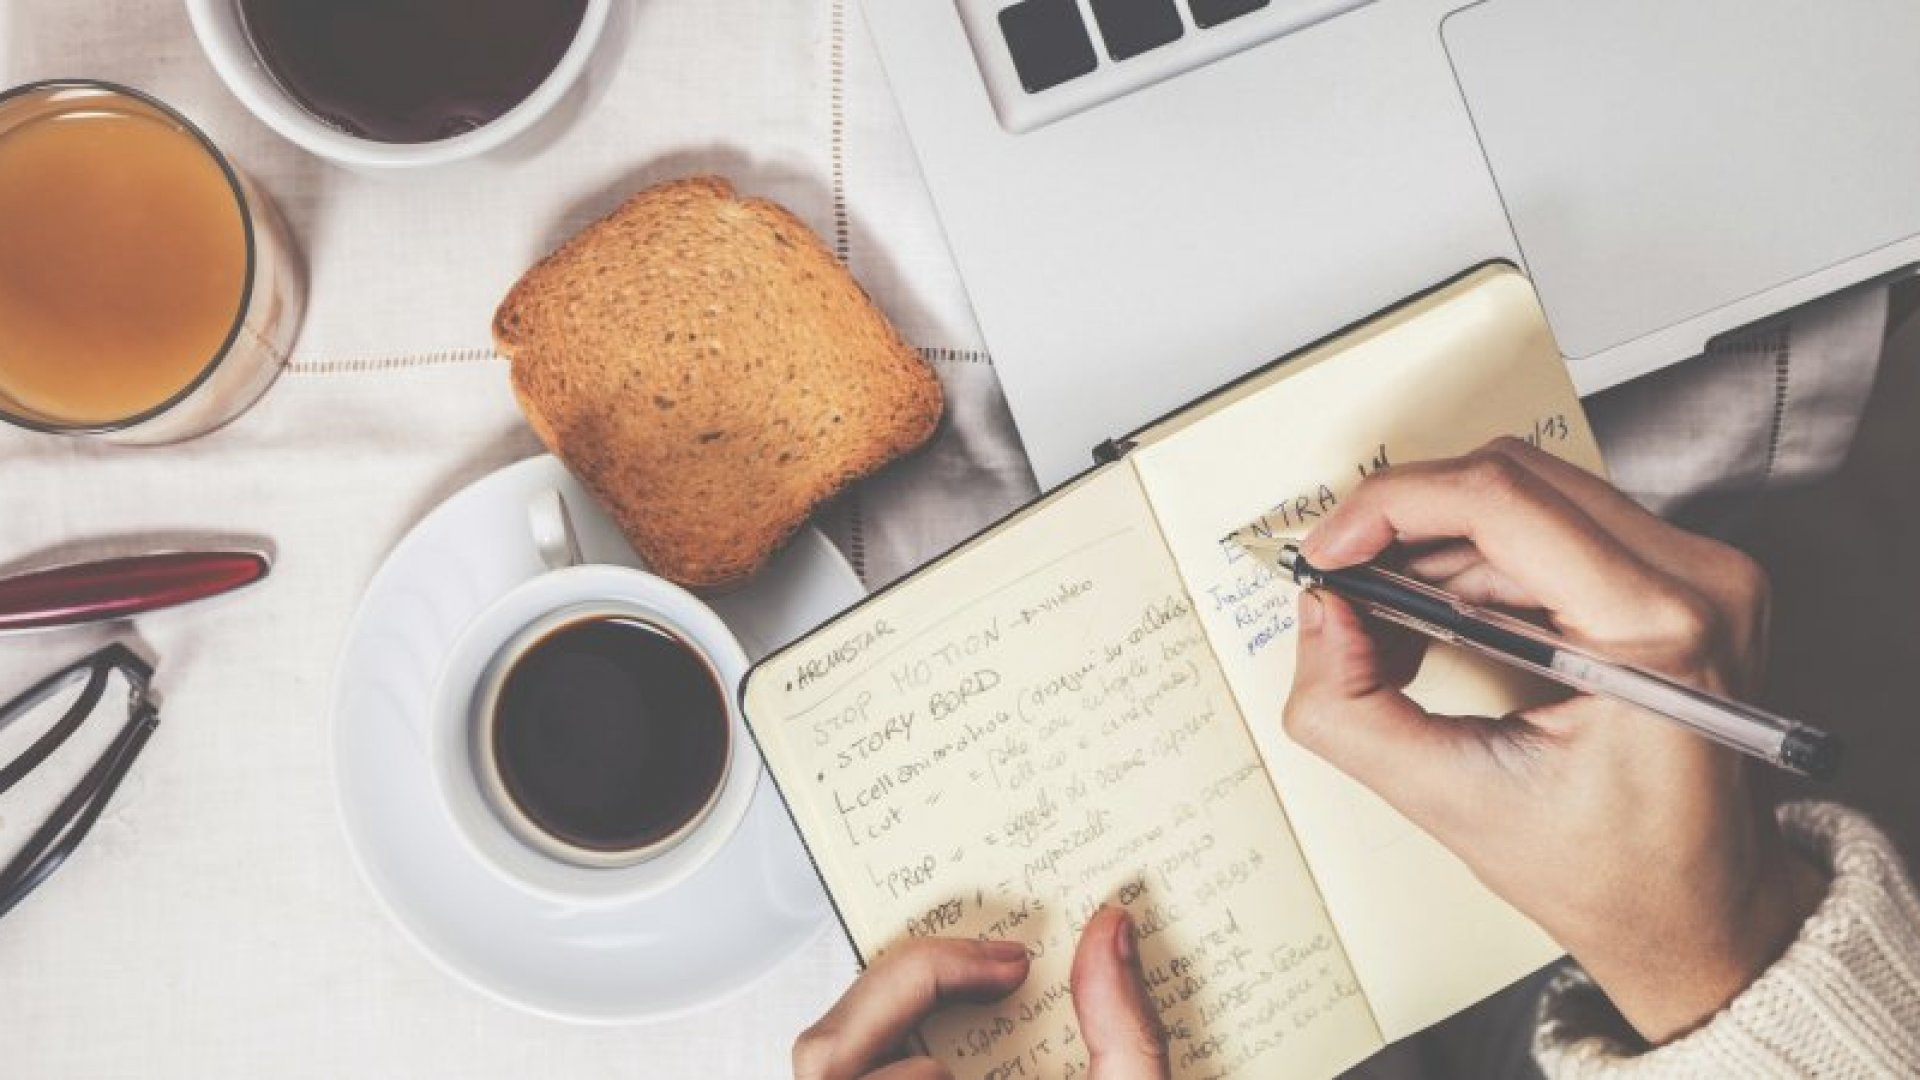 8 Smart Things Super-Productive People Do Each Morning